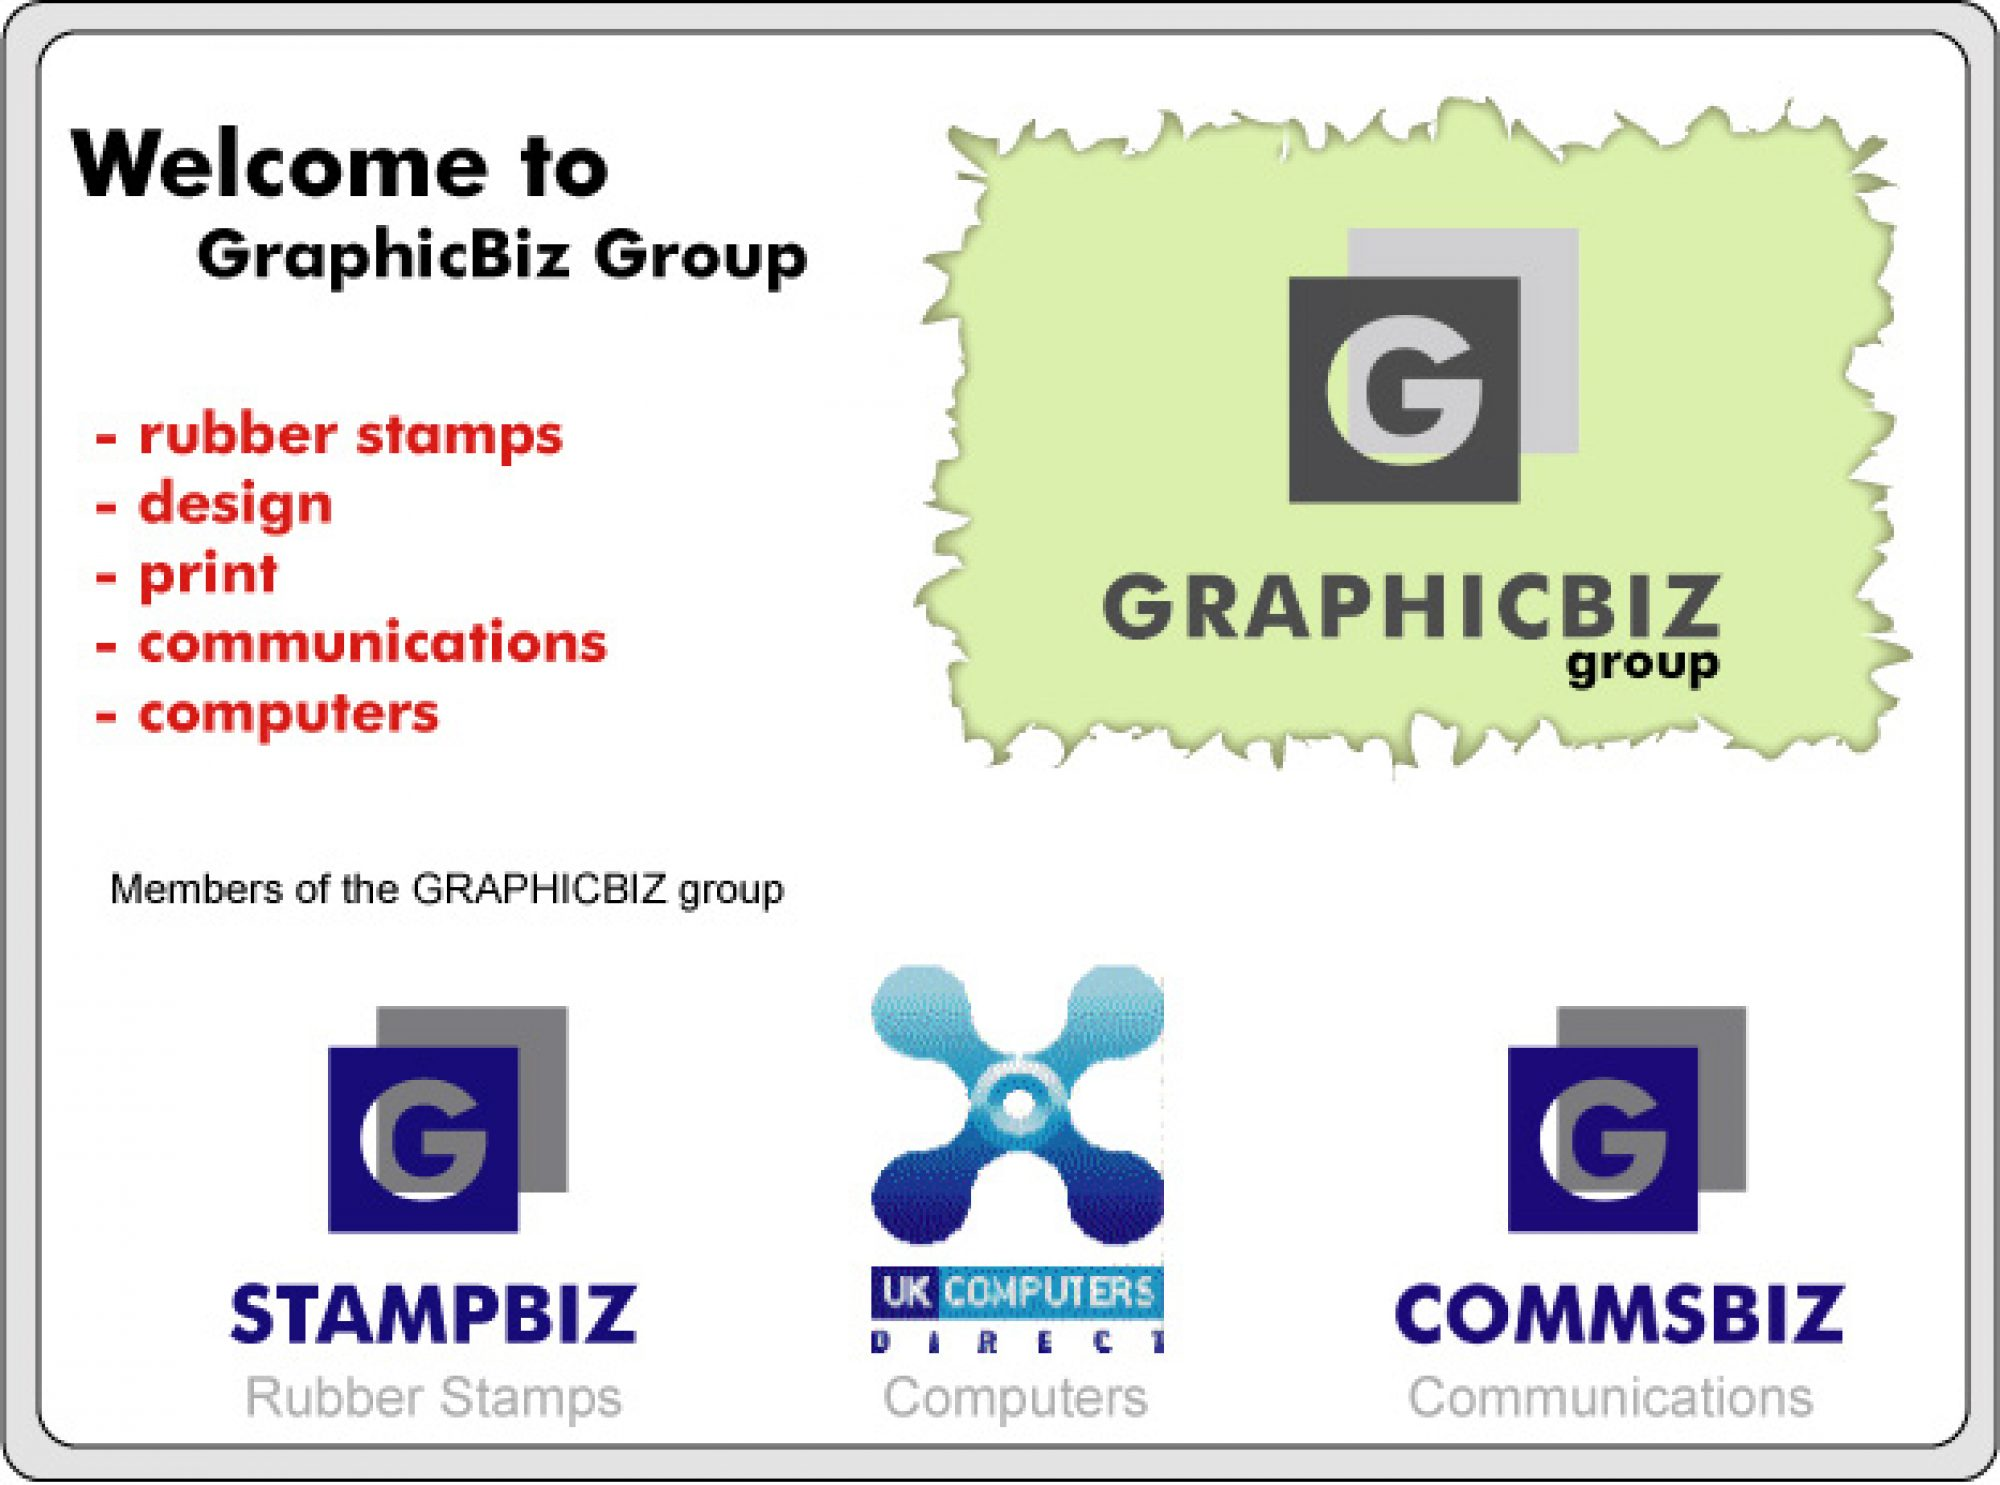 Graphicbiz Group